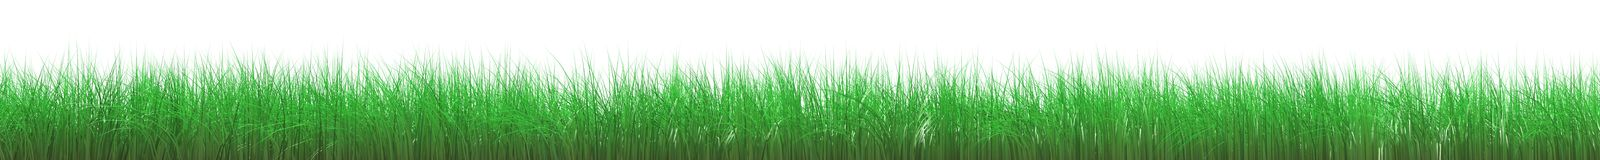 Grass frame. Green grass hairs background white ball turf frame nature object plant season space spring springtime summer summertime Royalty Free Stock Photography